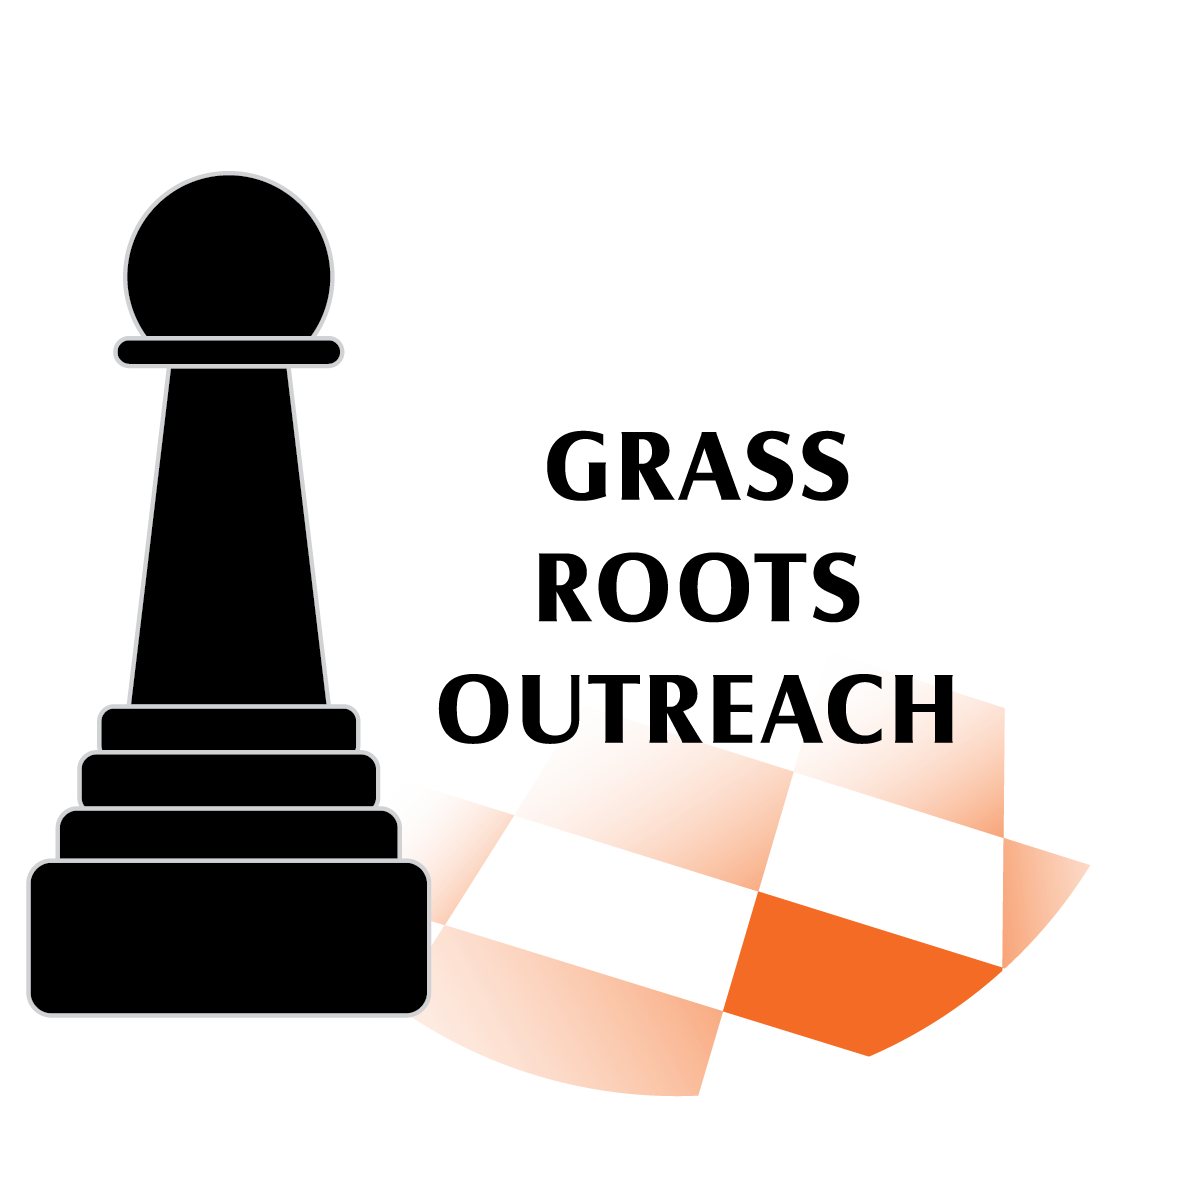 pawn chess piece Small Business training